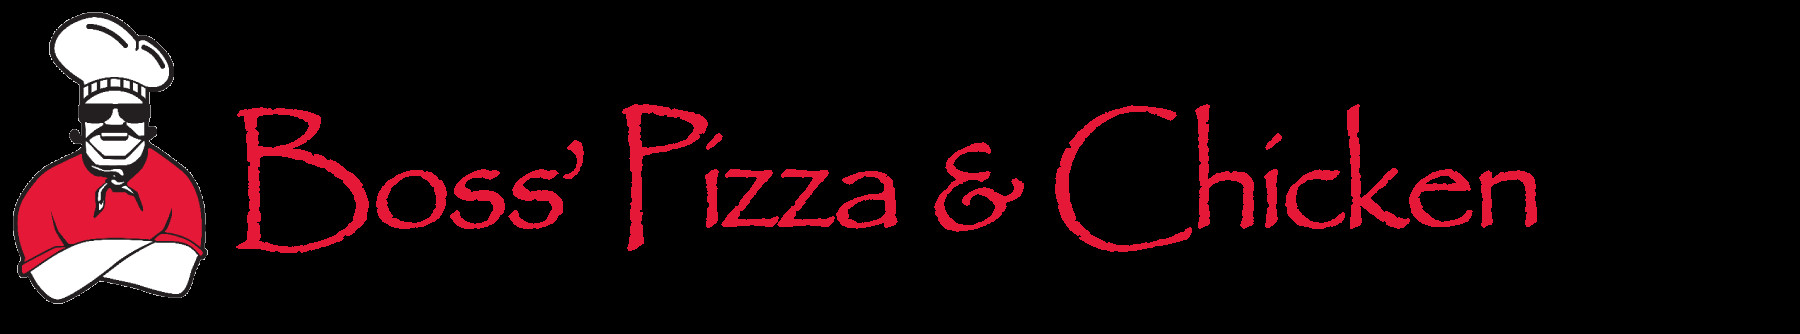 Boss Pizza And Chicken Sioux Falls  Boss Pizza & Chicken Restaurant in SD NE & MN